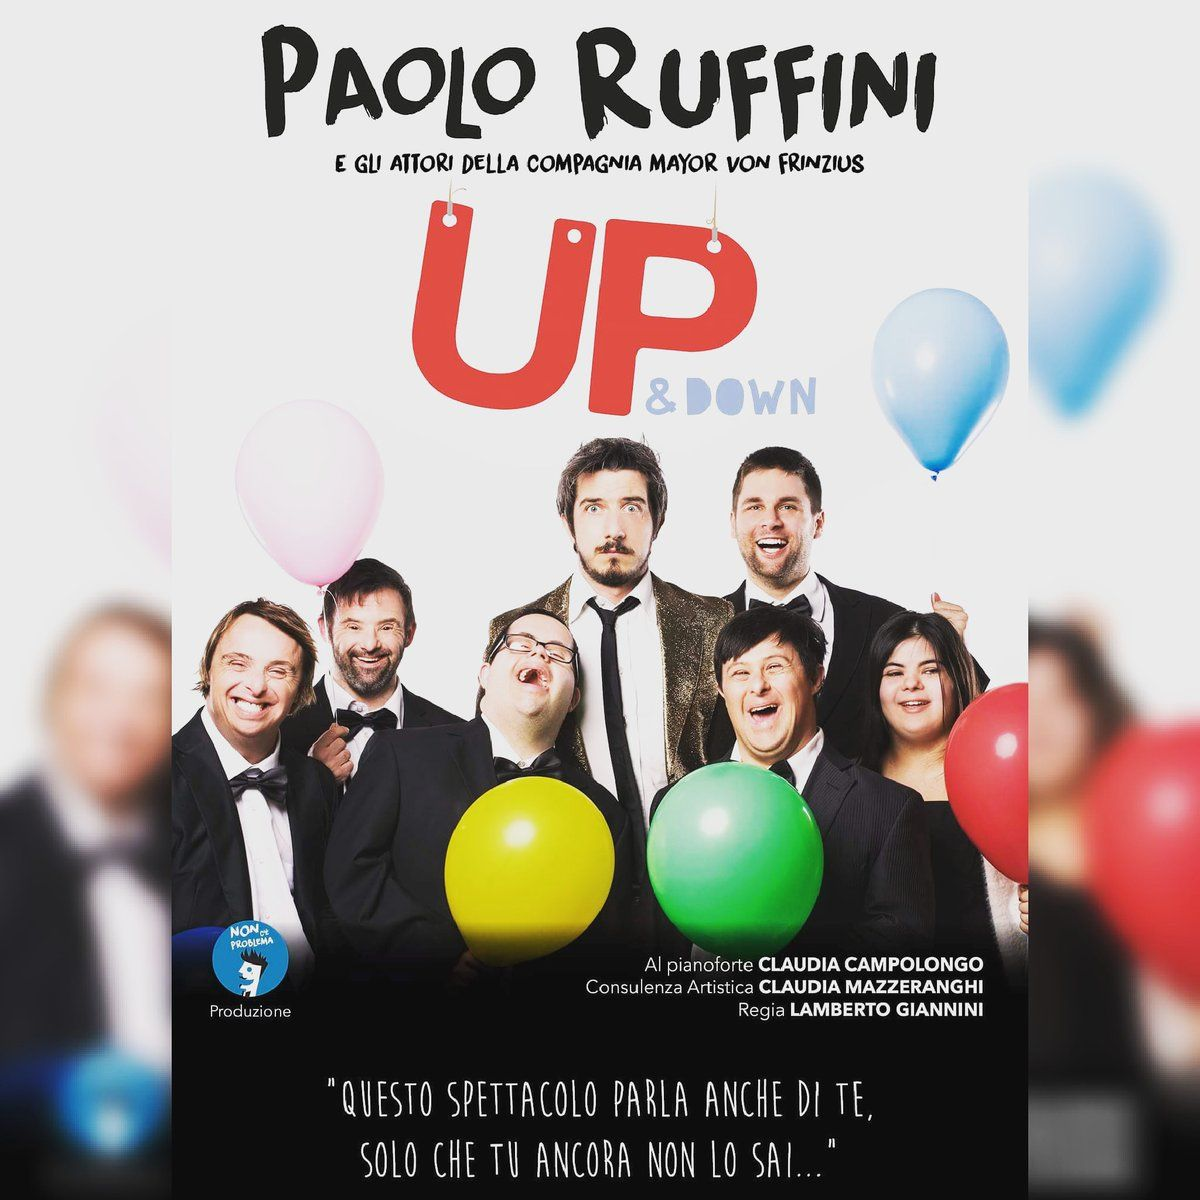 Up&Down Paolo Ruffini